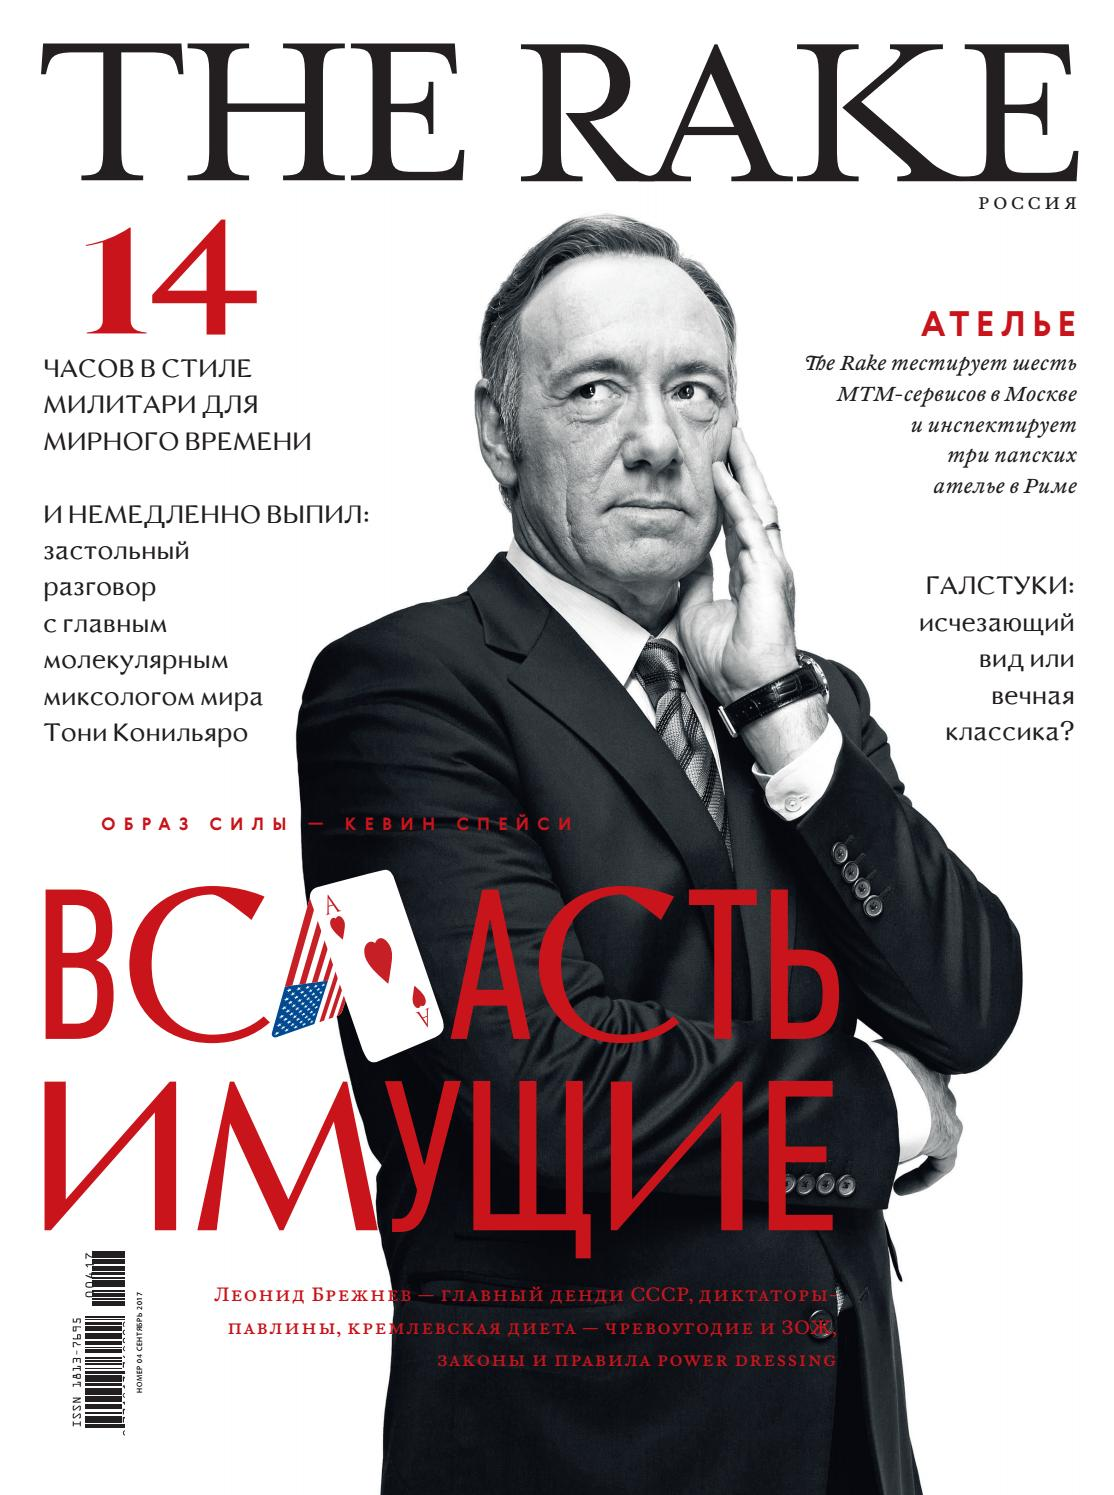 4f54ec8a3f4 The Rake magazine Russian edition 22 issue 2017 by The Rake - issuu